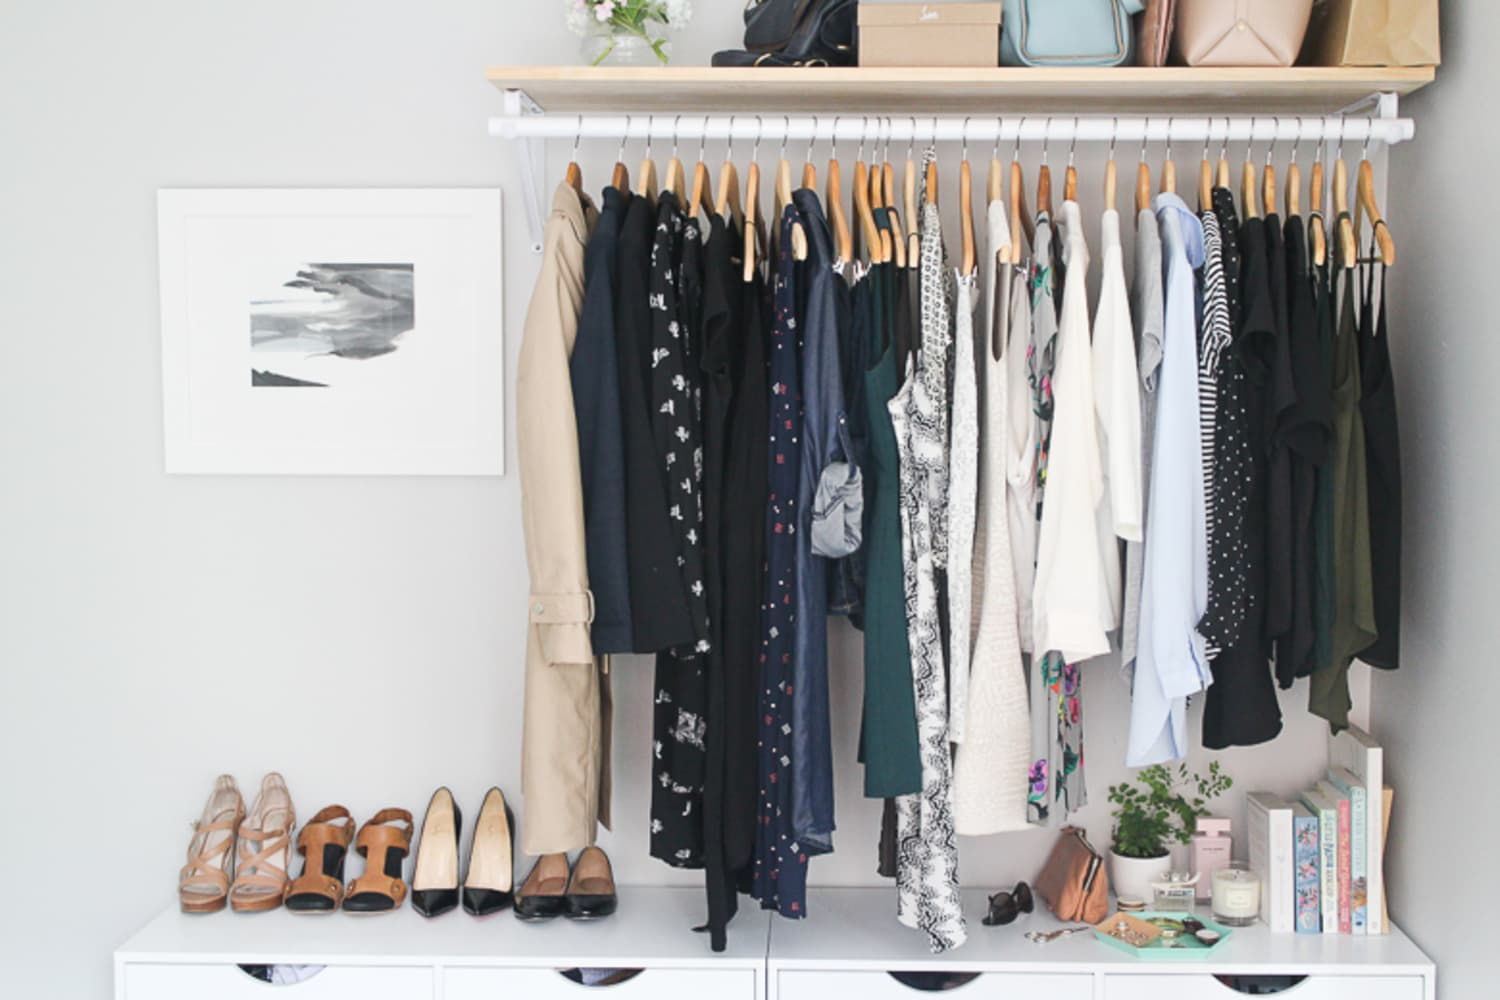 The 5 Organizing Items that Saved My Messy Bedroom Closet